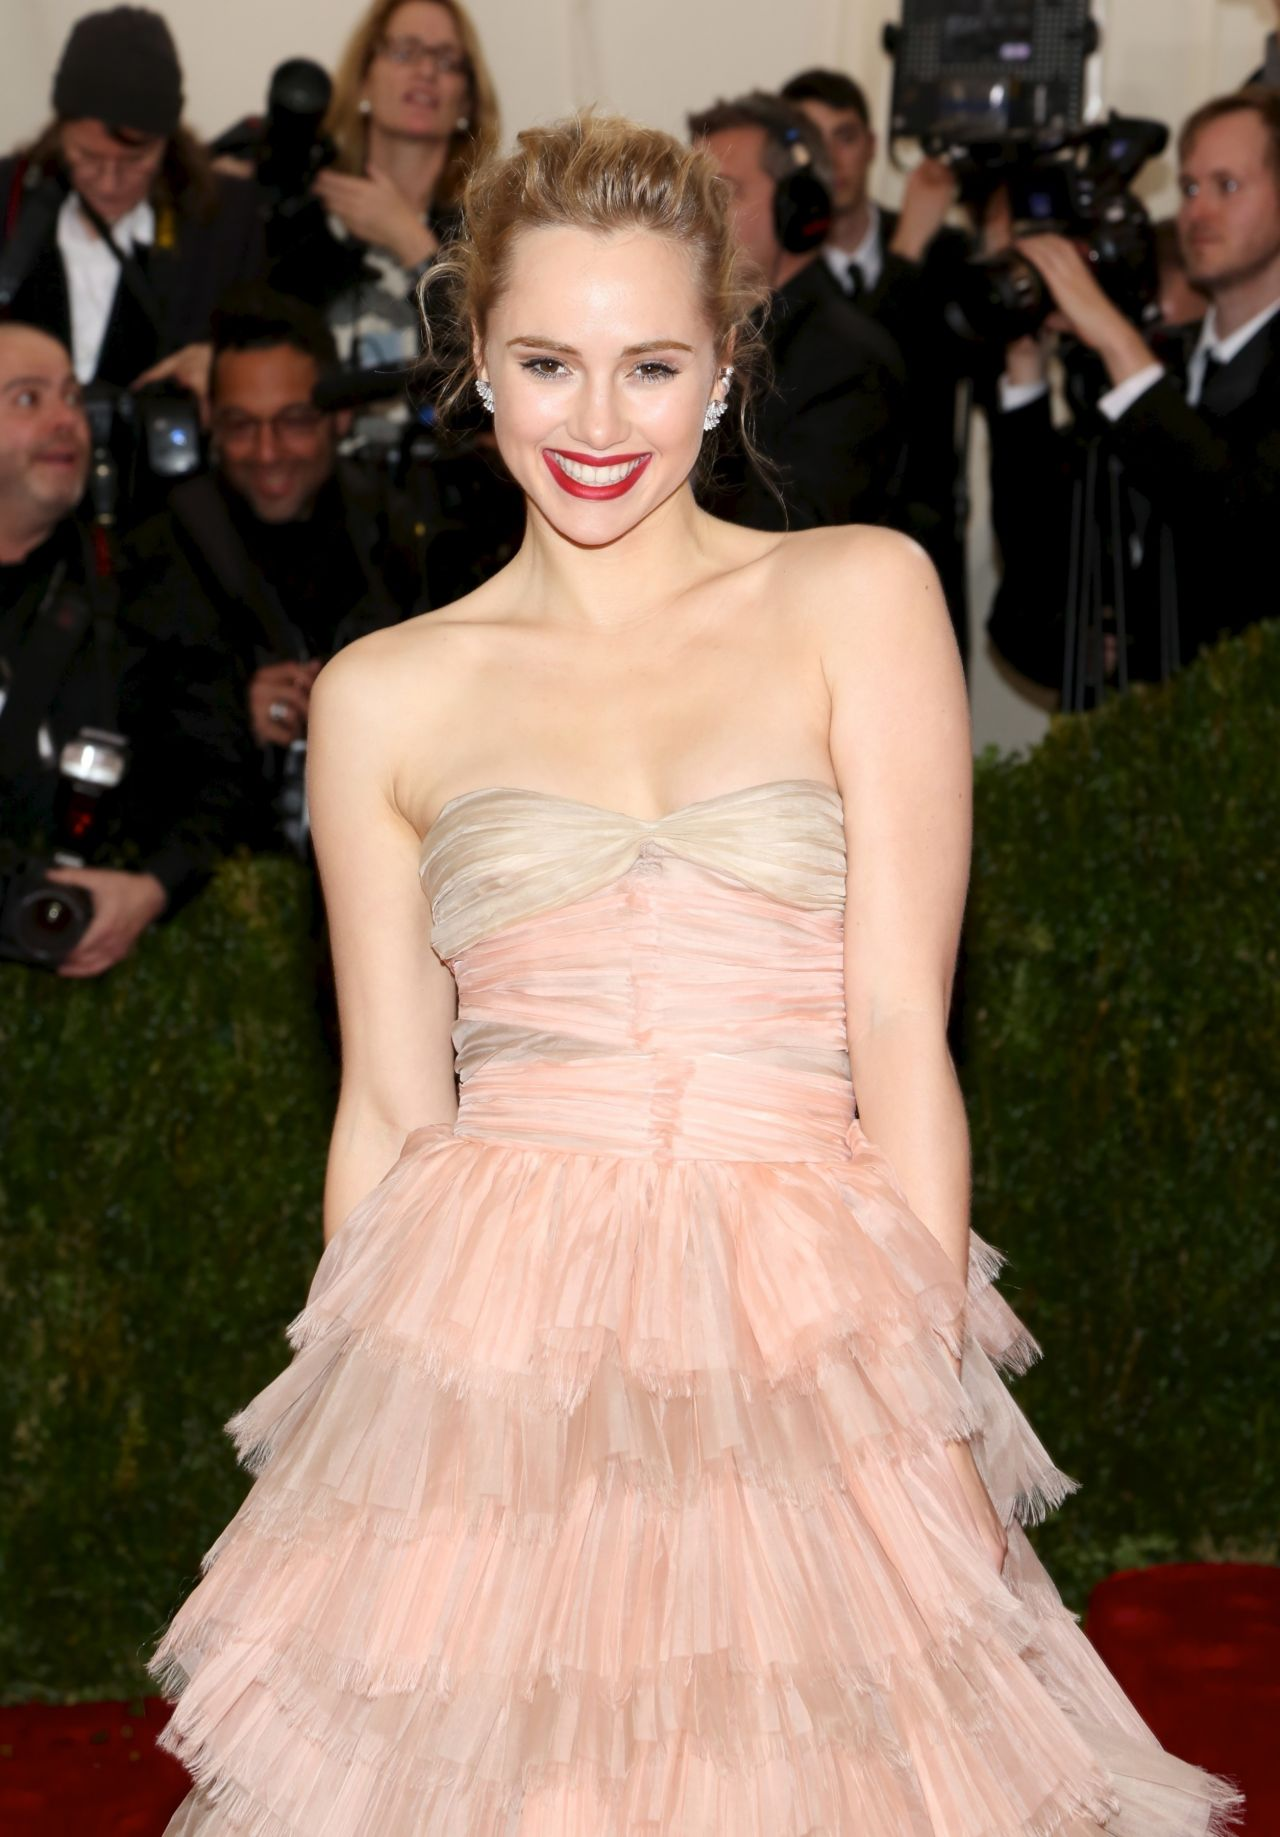 Suki Waterhouse Wearing Burberry Gown – 2014 Met Costume Institute Gala